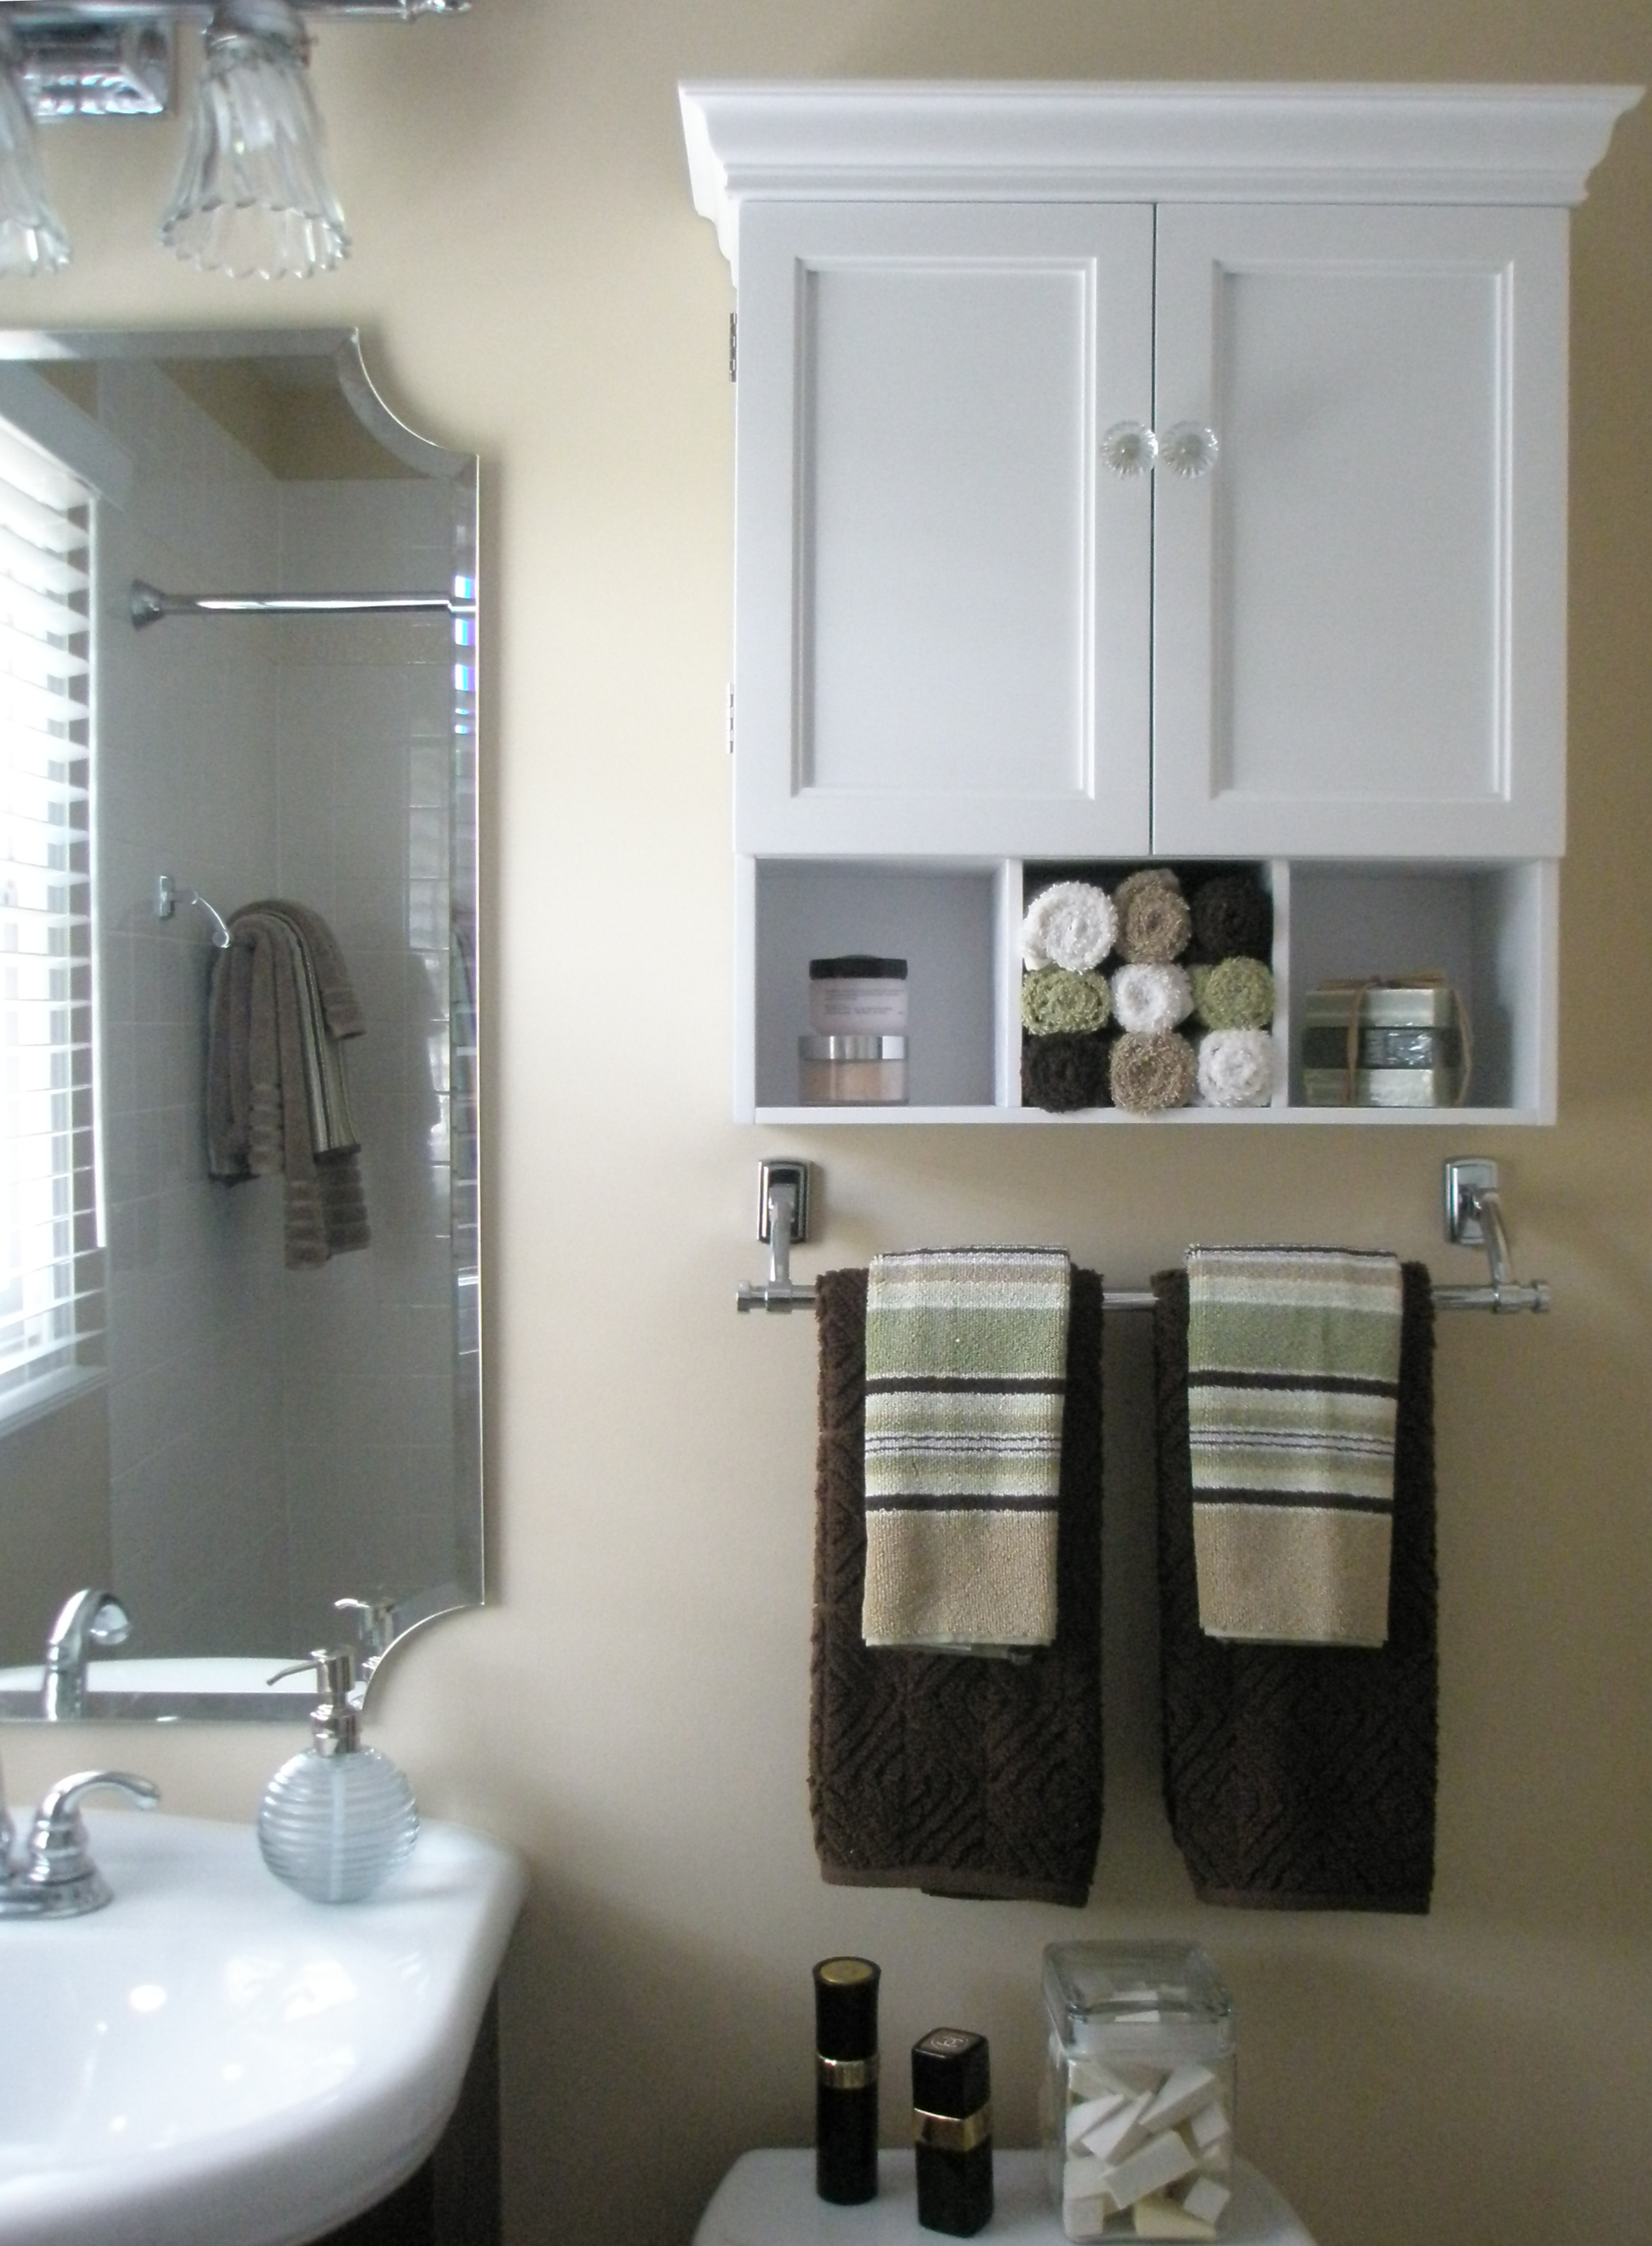 Home Depot Bathroom Designs - HomesFeed